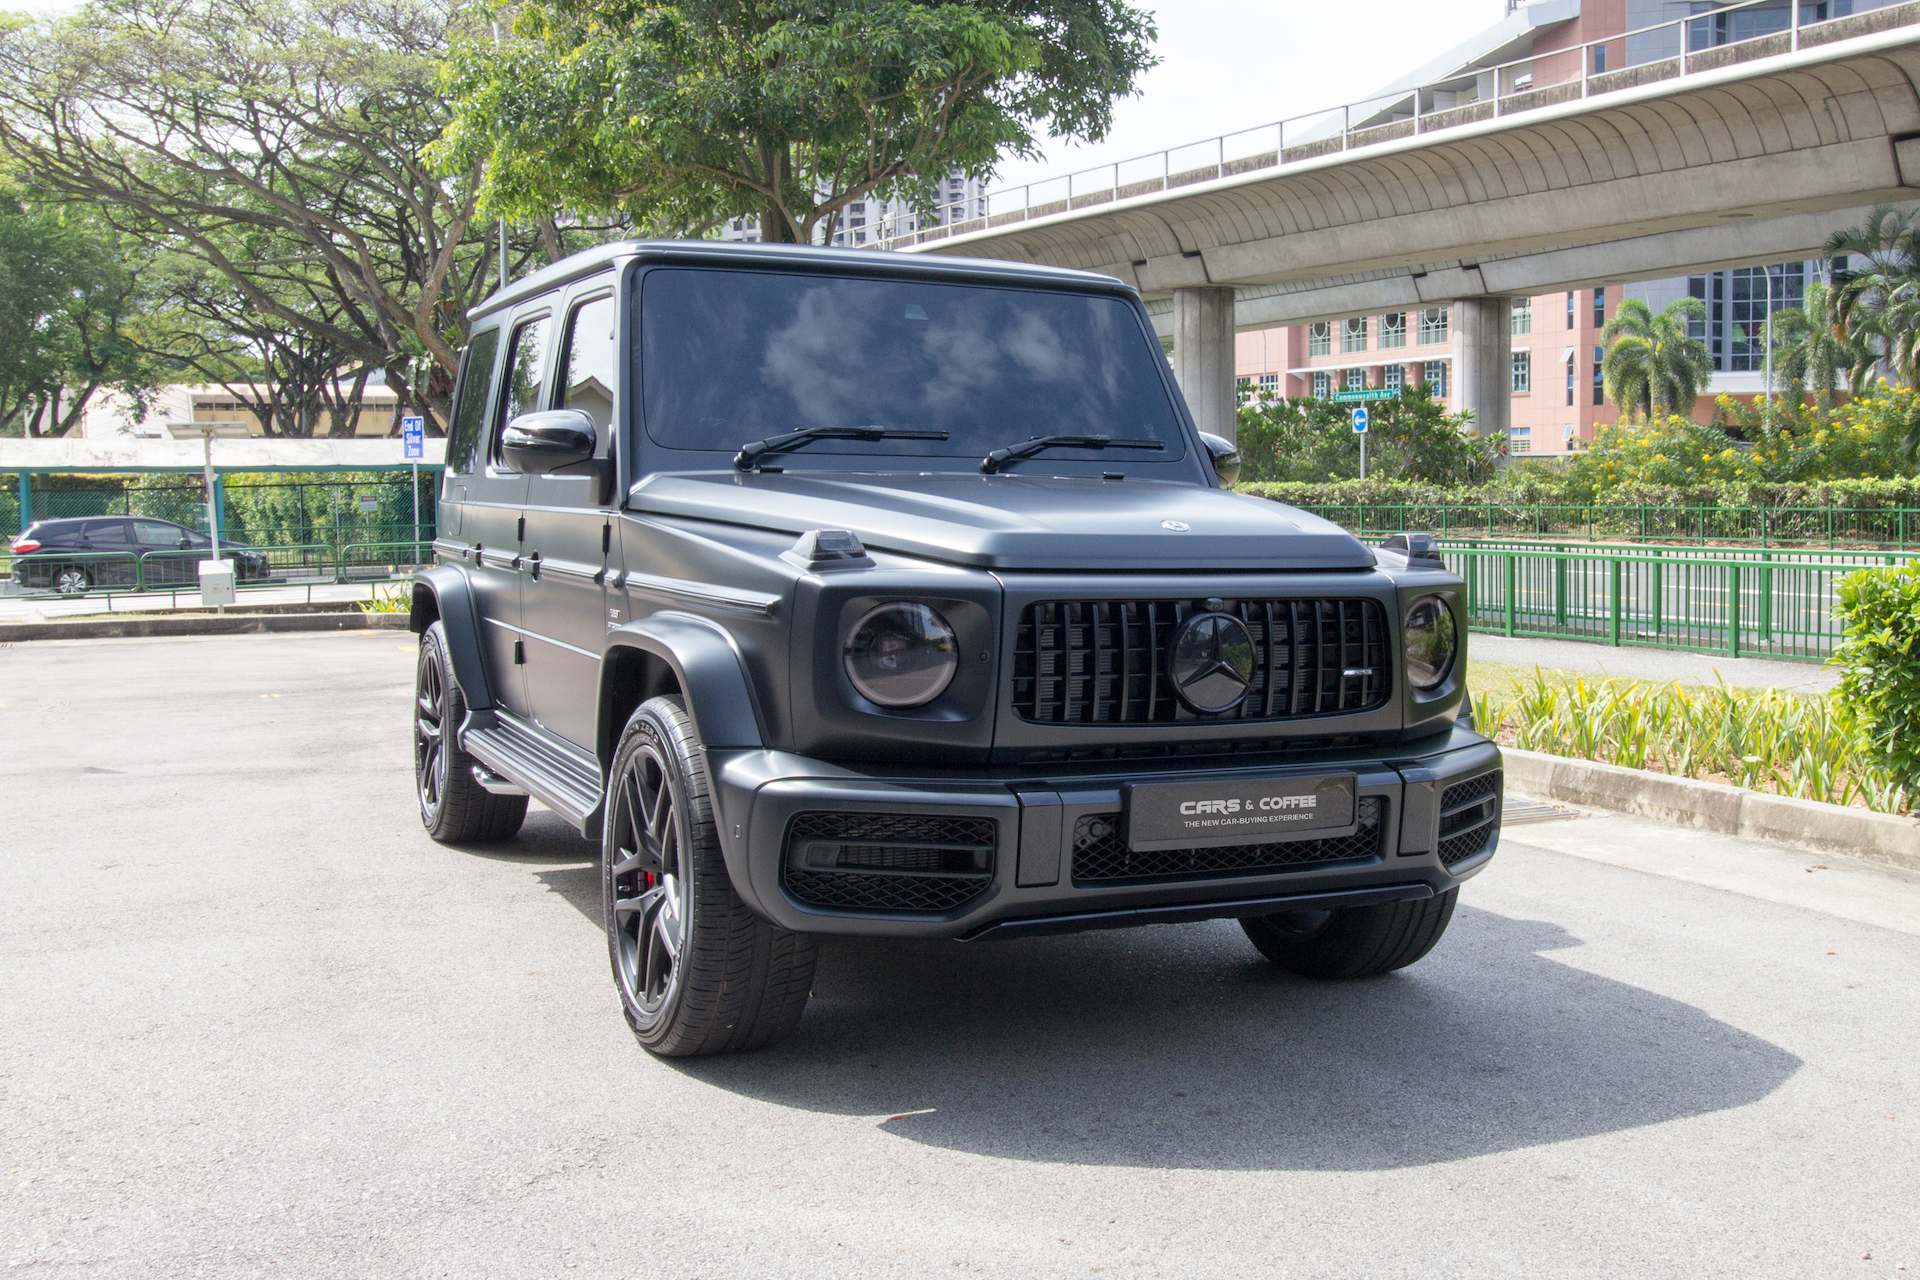 Certified Pre-Owned Mercedes-AMG G63 4MATIC | Cars and Coffee Singapore